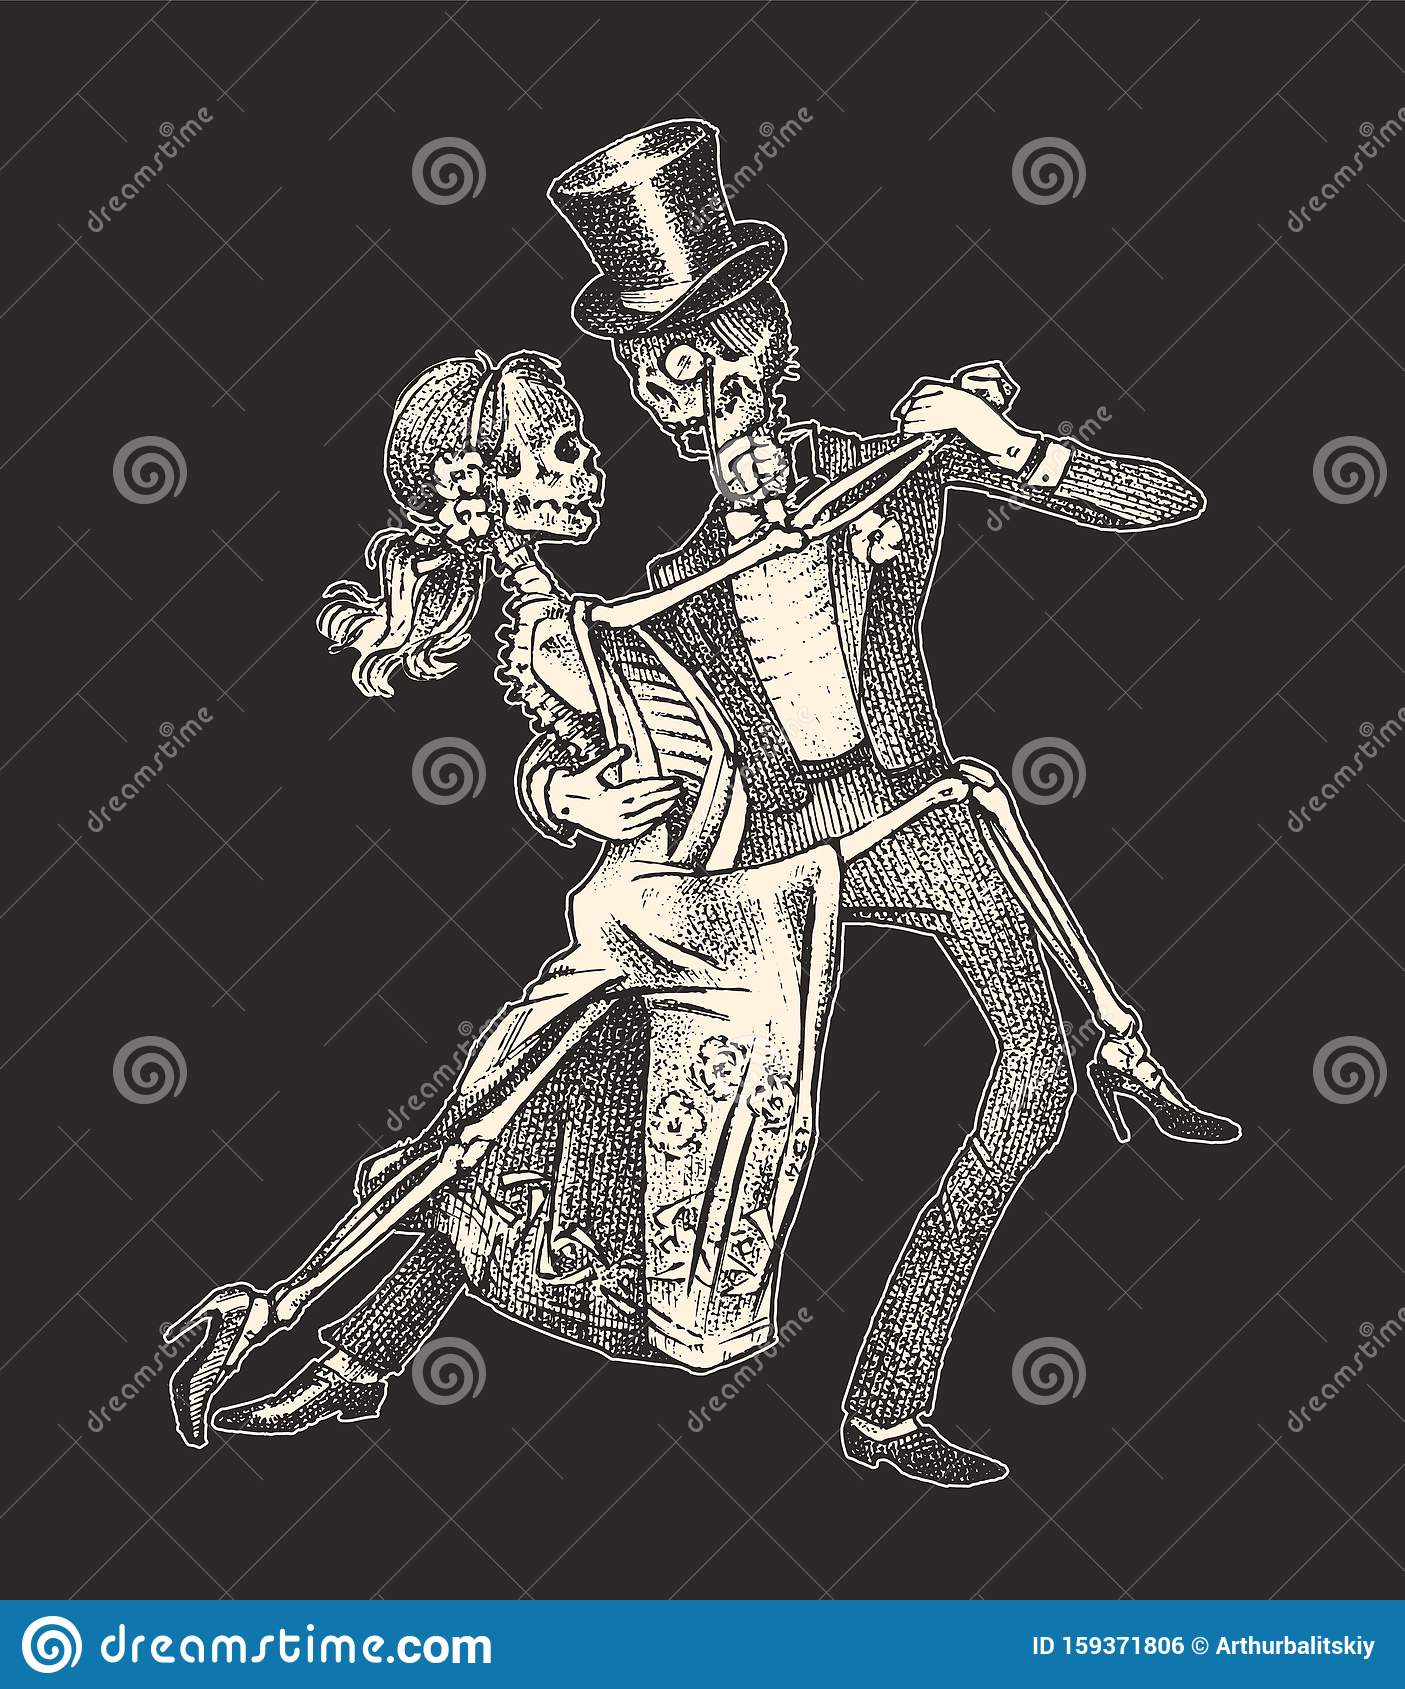 Dancing skeletons. Halloween banner template. Day of the dead. Hand drawn engraved sketch for tattoo, t-shirt or logo.